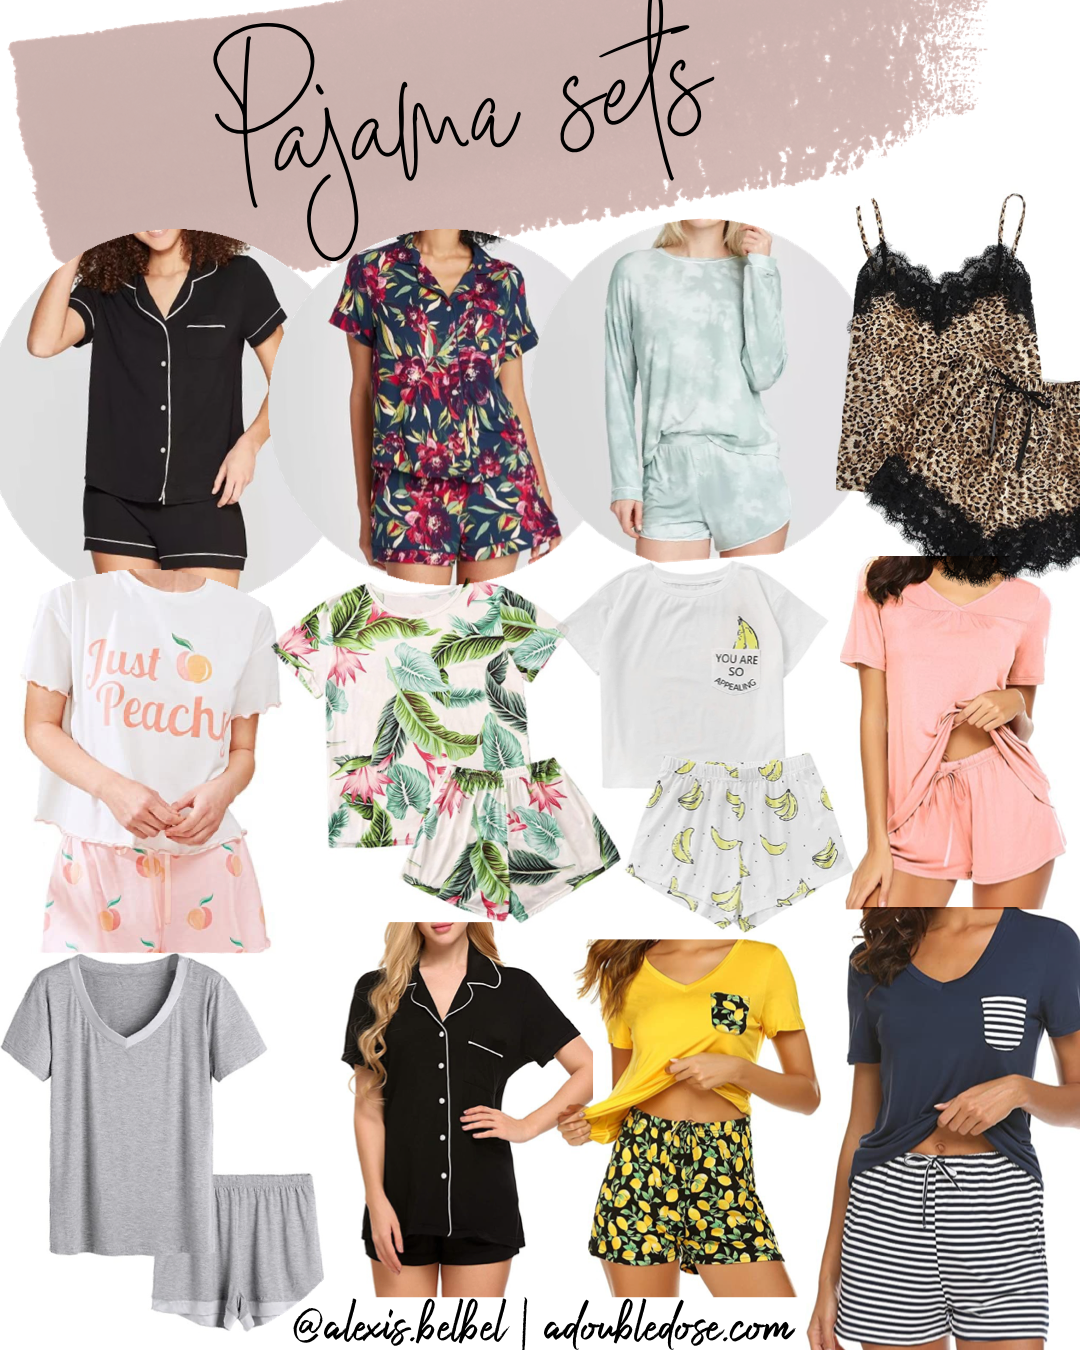 Lifestyle fashion blogger alexis belbel sharing her favorite loungewear short sets to wear at home from Amazon and Target | adoubledose.com